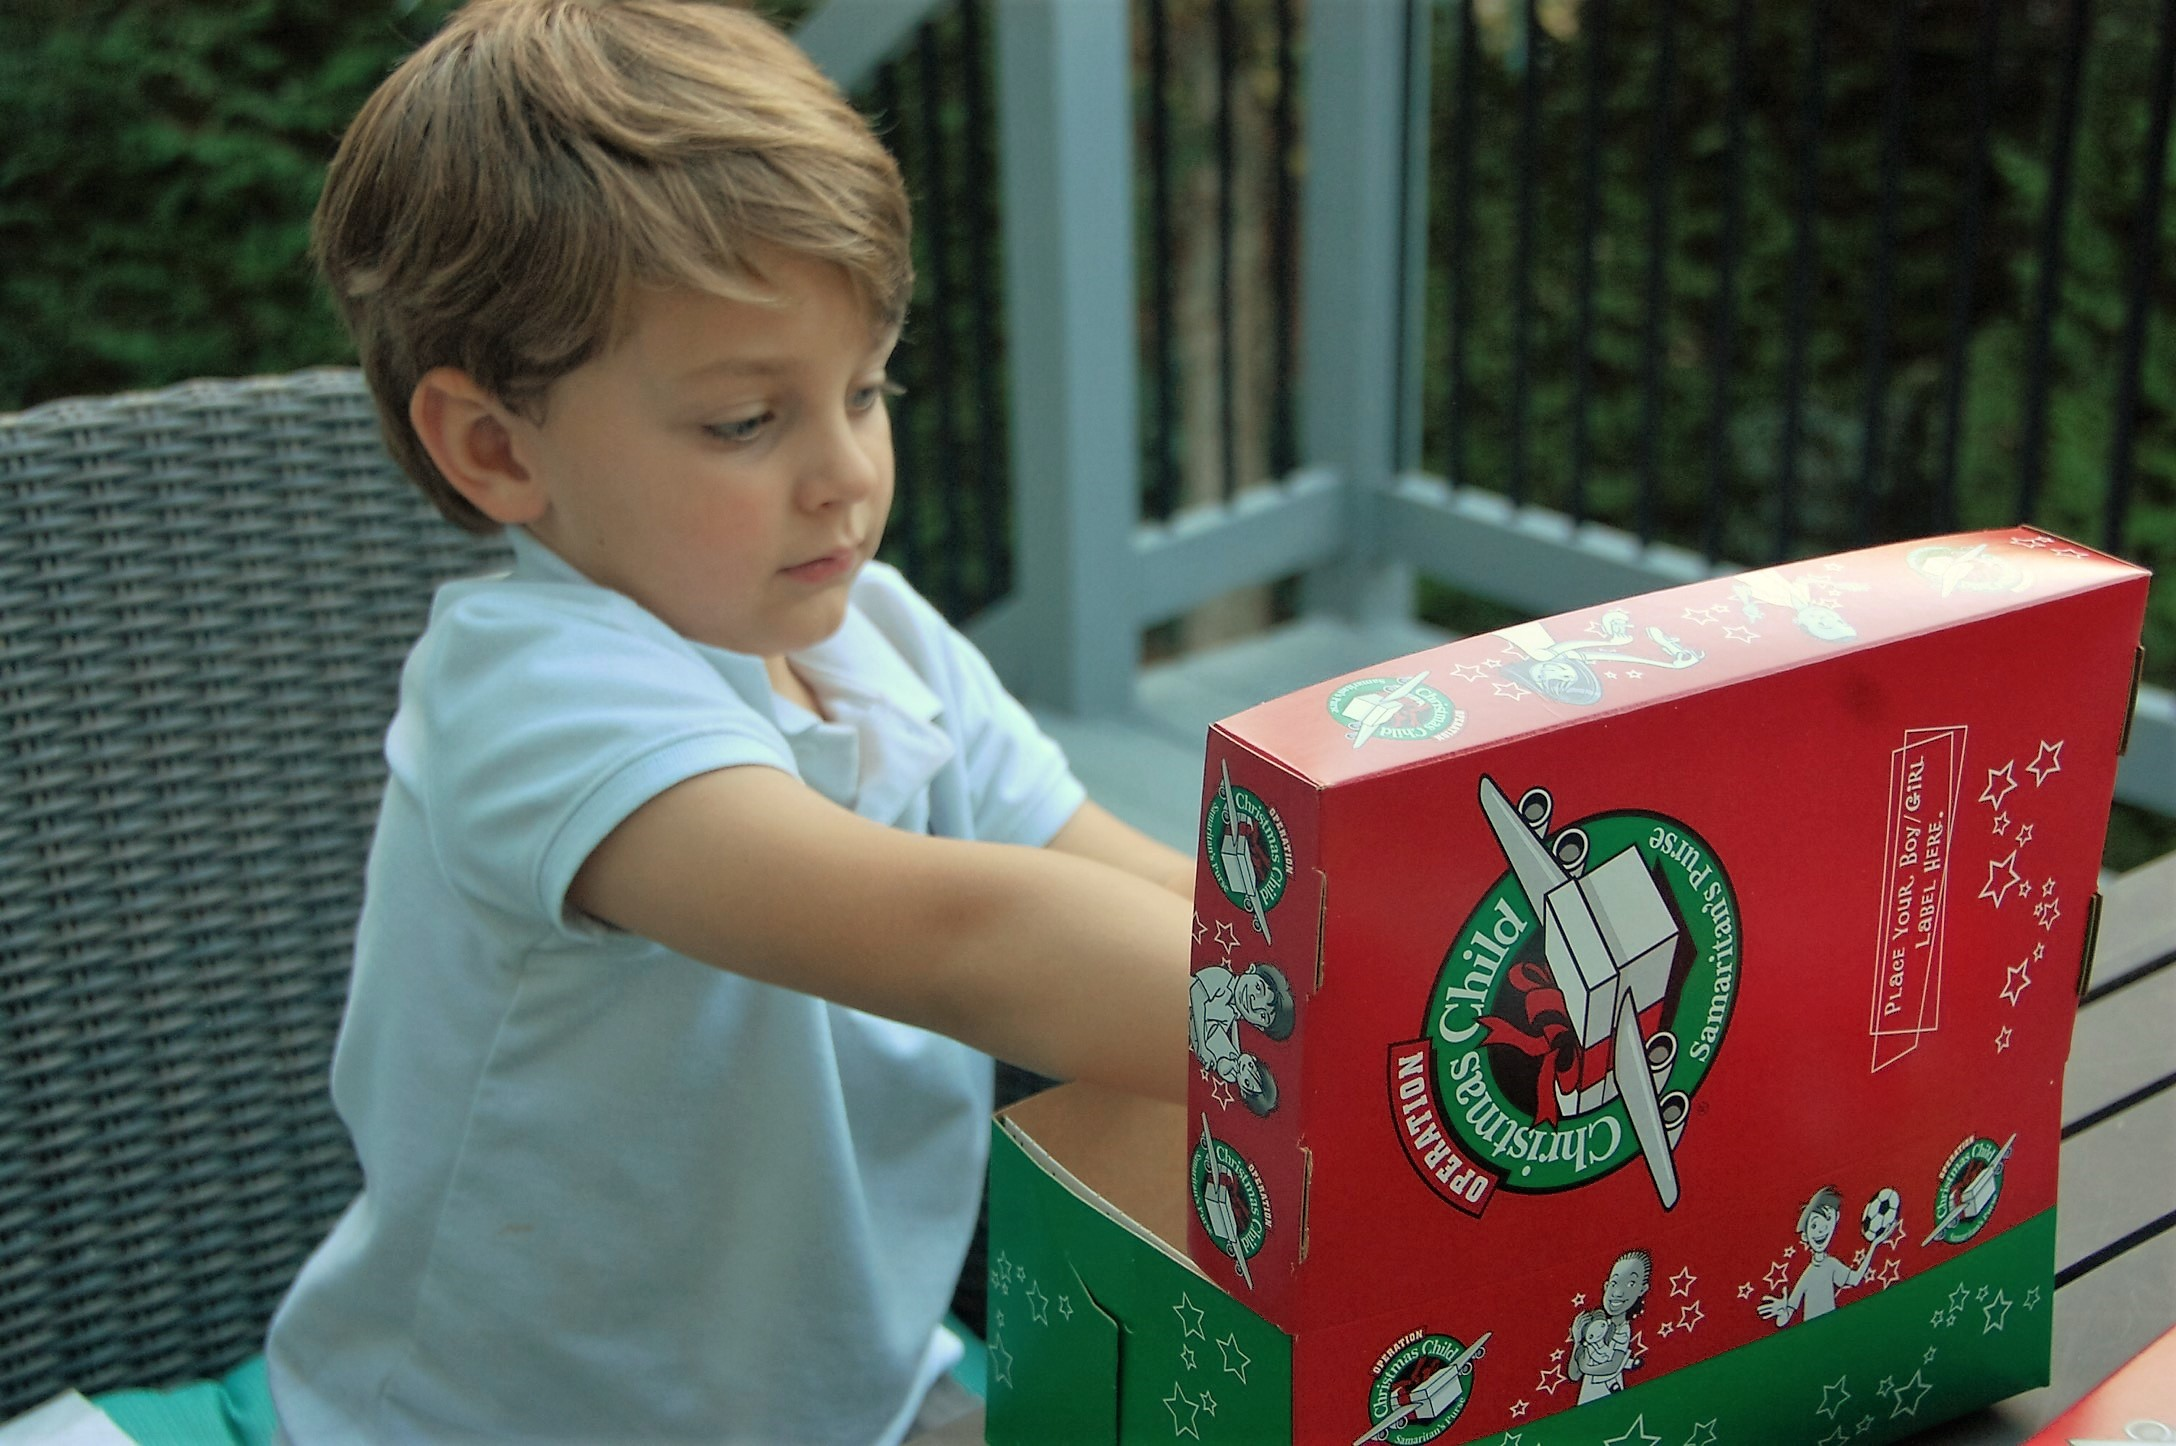 Knox Bishop fills his Operation Christmas Child Shoebox with toys for Samaritan's Purse - Crockpot Empire